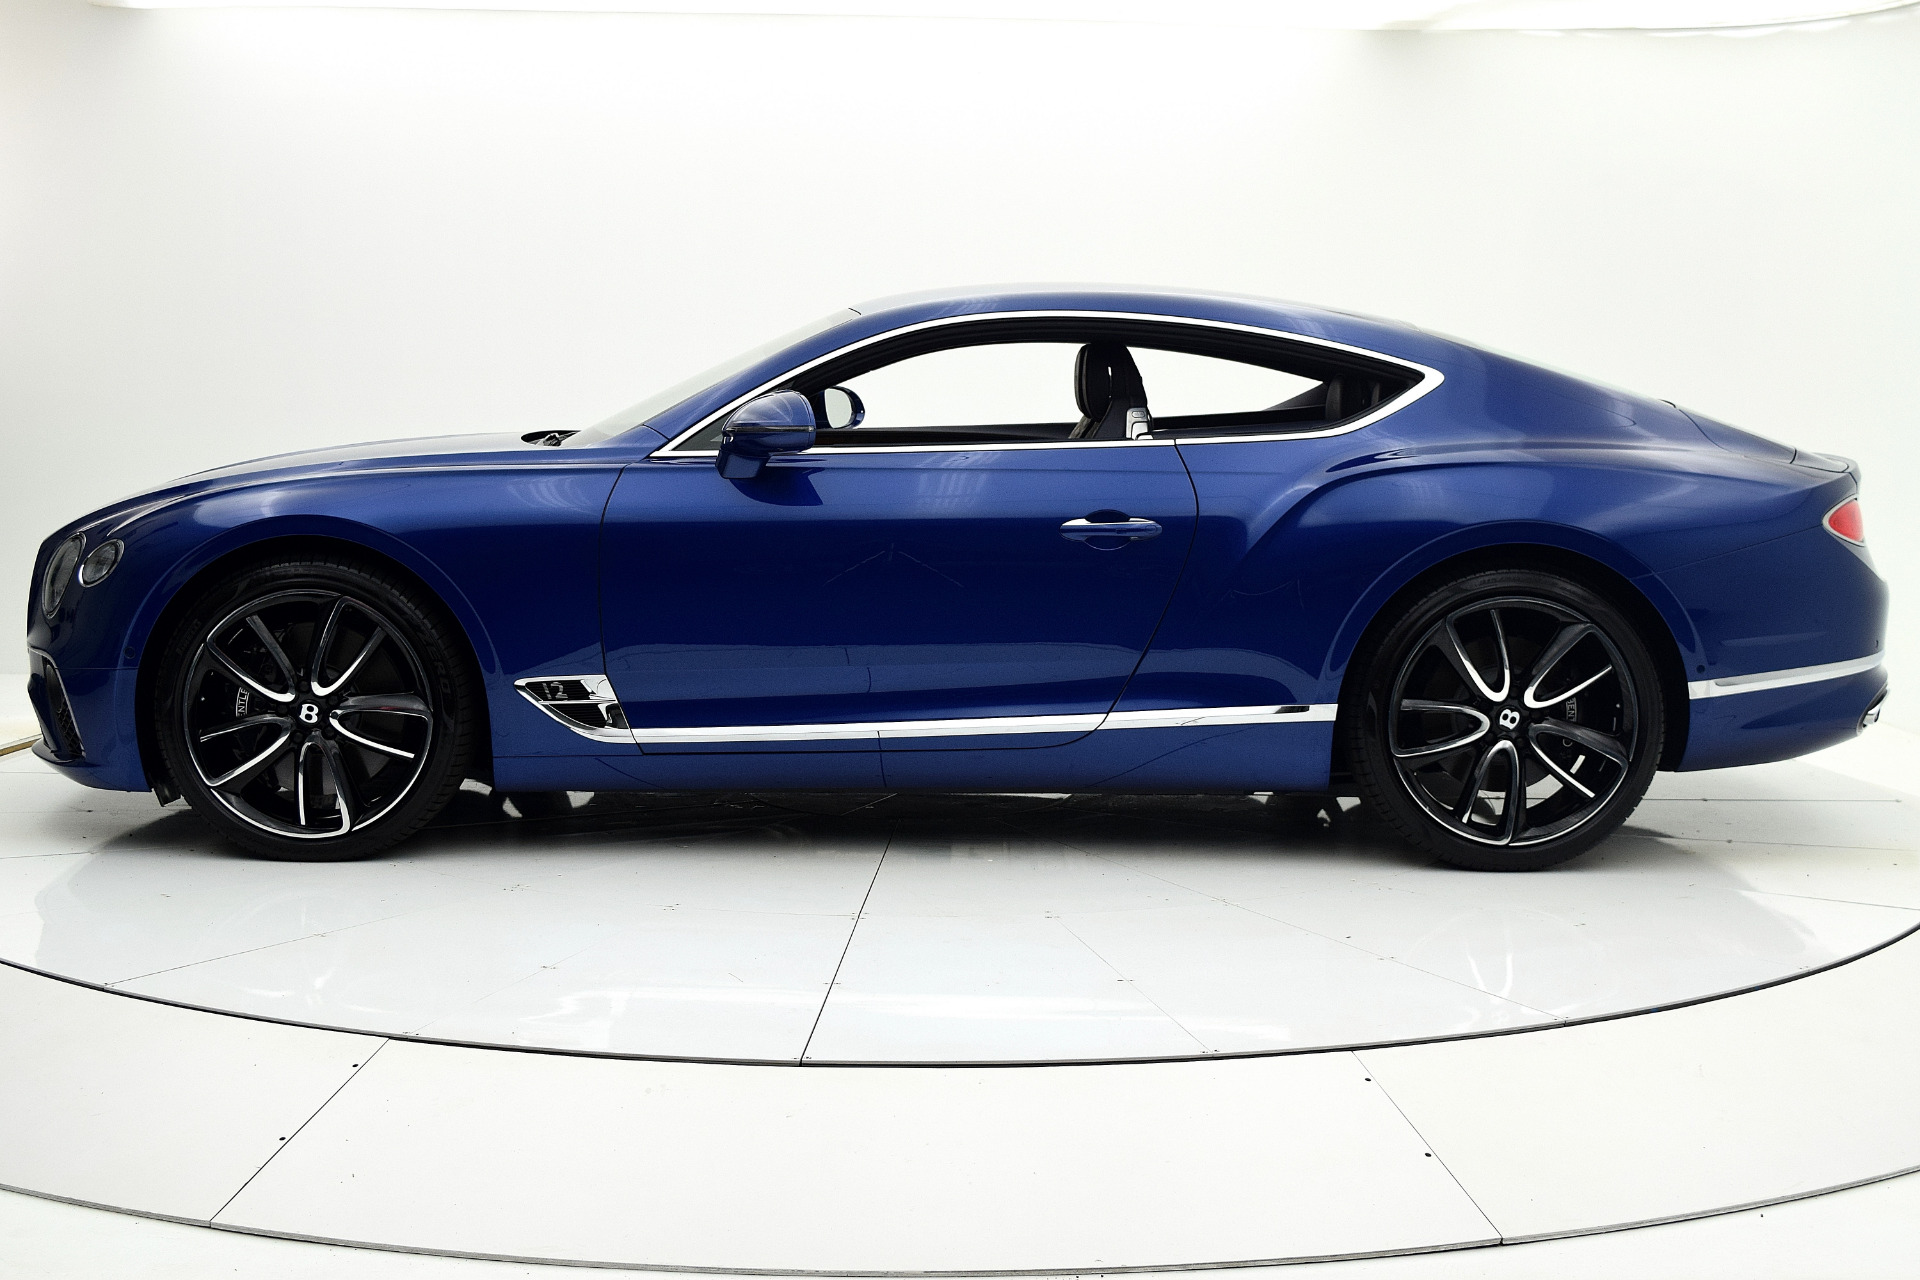 New 2020 Bentley New Continental GT Coupe for sale Sold at F.C. Kerbeck Bentley Palmyra N.J. in Palmyra NJ 08065 2